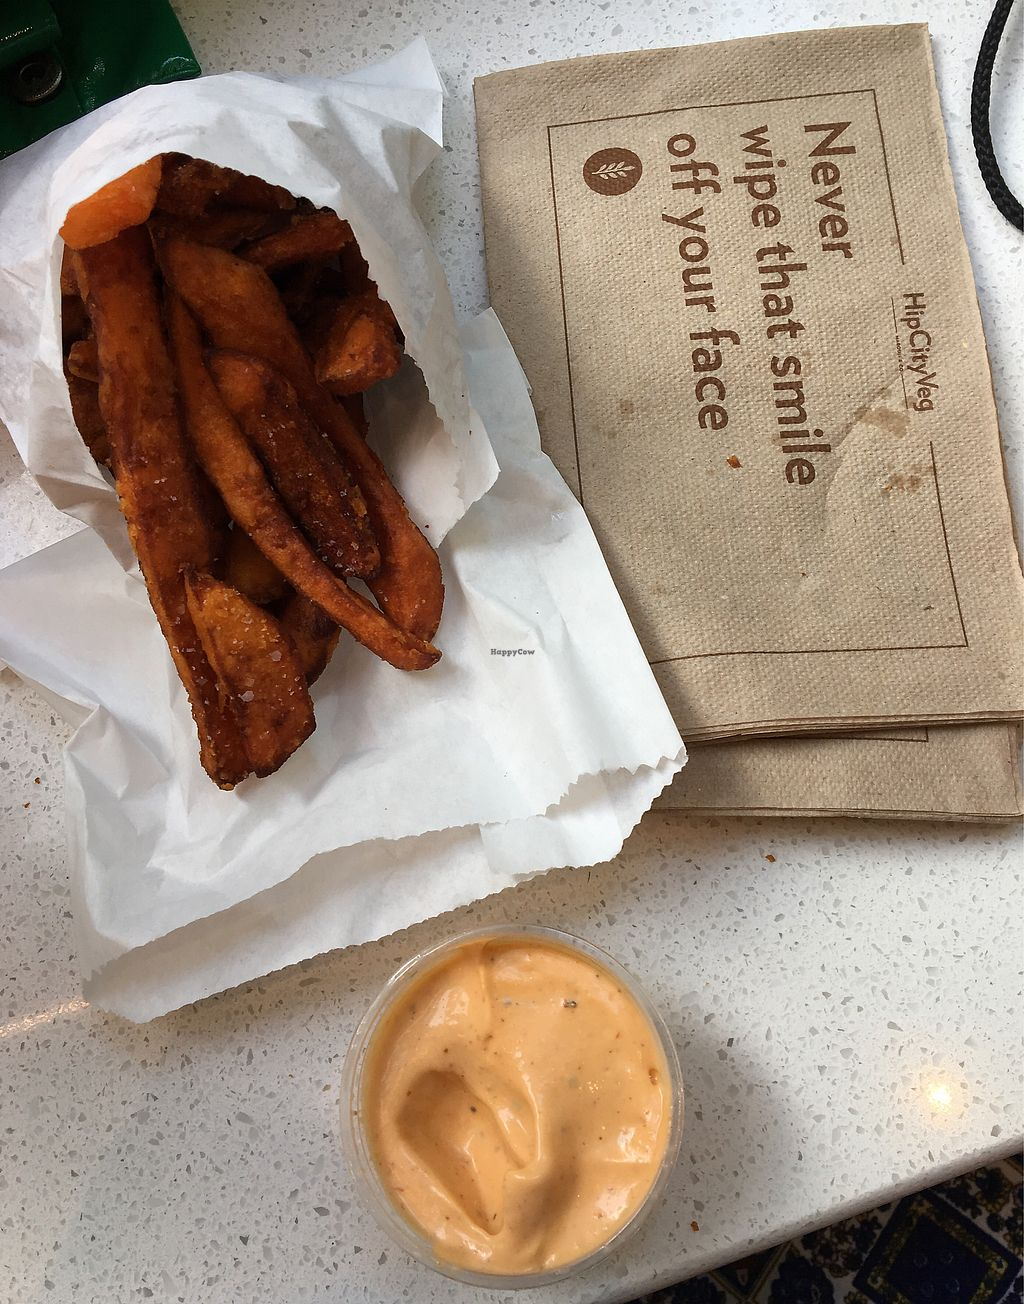 """Photo of HipCityVeg - Broad St  by <a href=""""/members/profile/Thepennsyltuckyvegan"""">Thepennsyltuckyvegan</a> <br/>sweet potato fries and siracha aoli  <br/> June 21, 2017  - <a href='/contact/abuse/image/84195/271950'>Report</a>"""